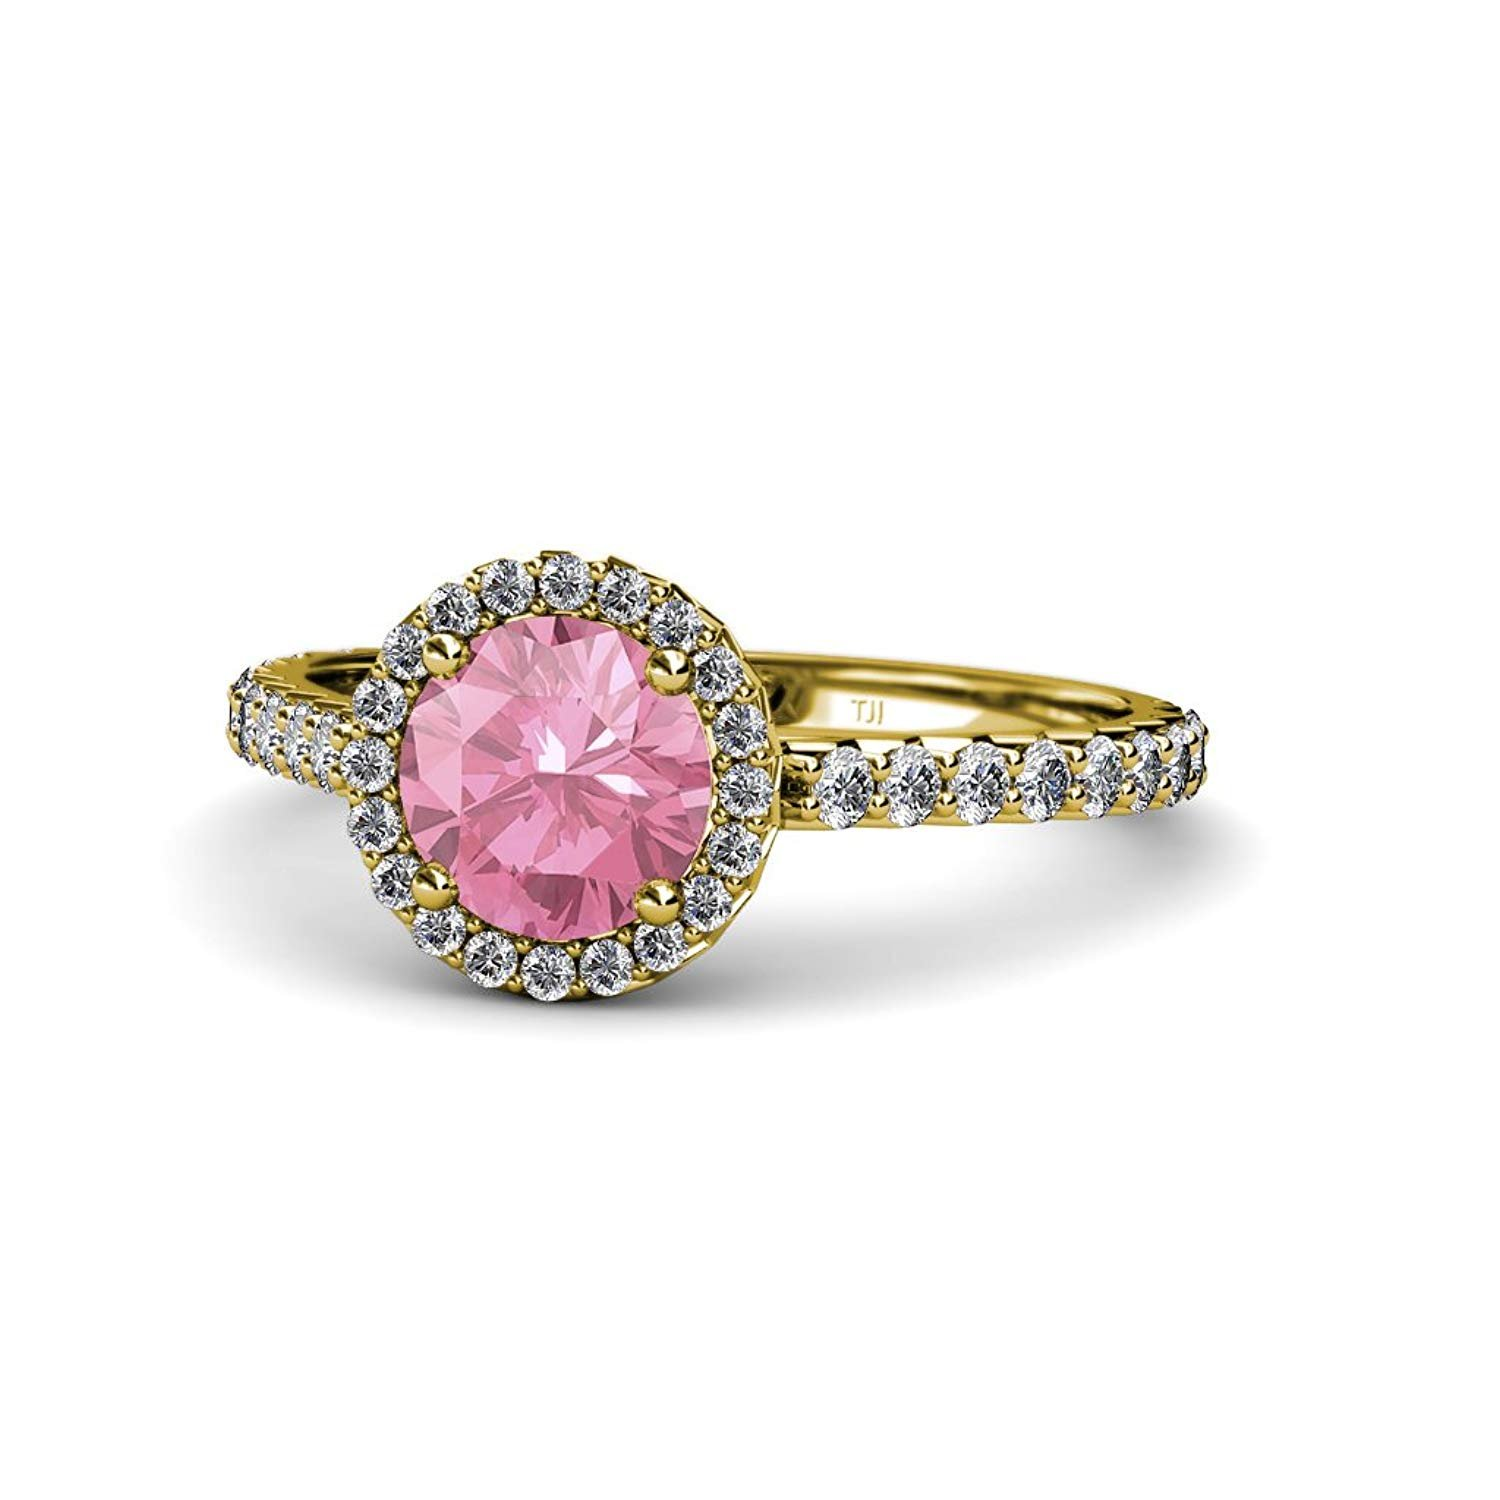 Pink Tourmaline and Diamond (SI2-I1, G-H) Halo Engagement Ring 1.38 ct tw in 14K Yellow Gold.size 4.5 by TriJewels